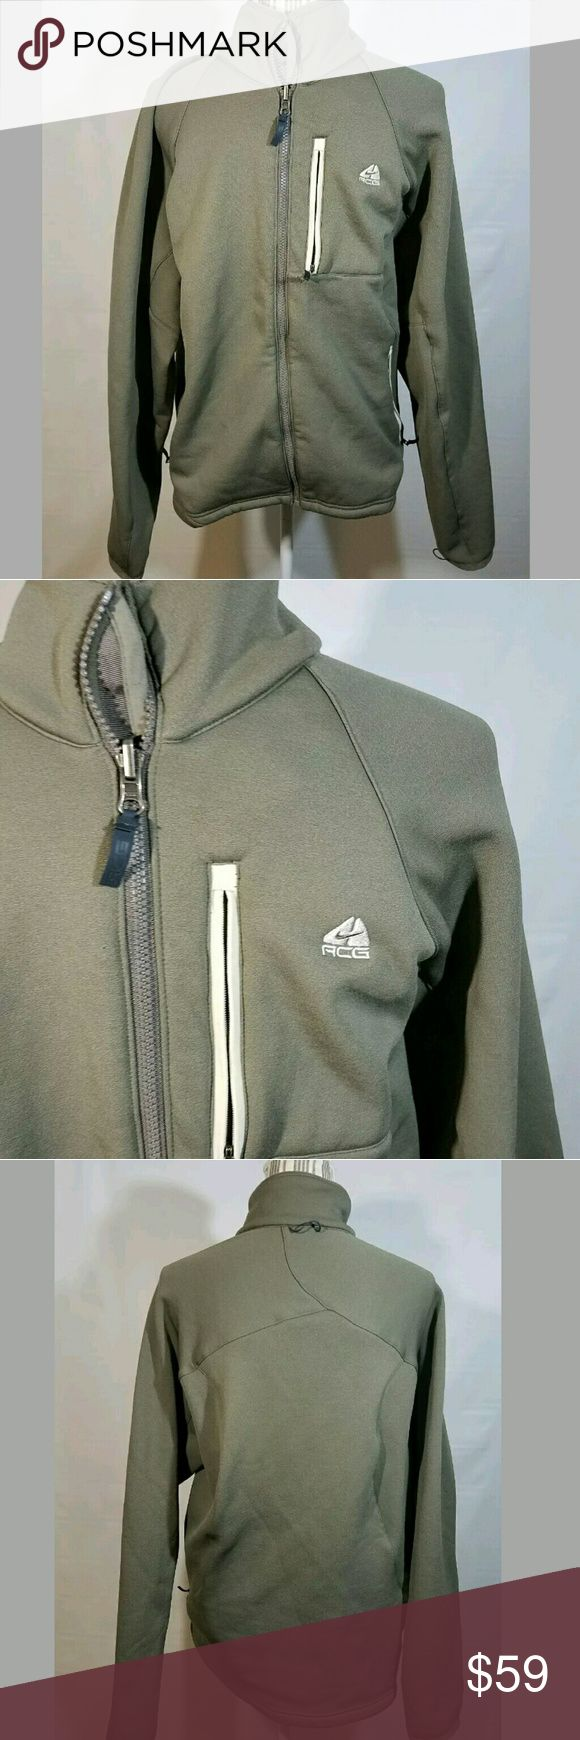 Nike ACG Jacket Men's Medium Nikefit Therma Full Nike ACG Jacket Men's Medium Nikefit Therma Full Zip Olive-- Excellent used condition.   23 inches pit to pit.  27 inches long.   LB Nike ACG Jackets & Coats Performance Jackets